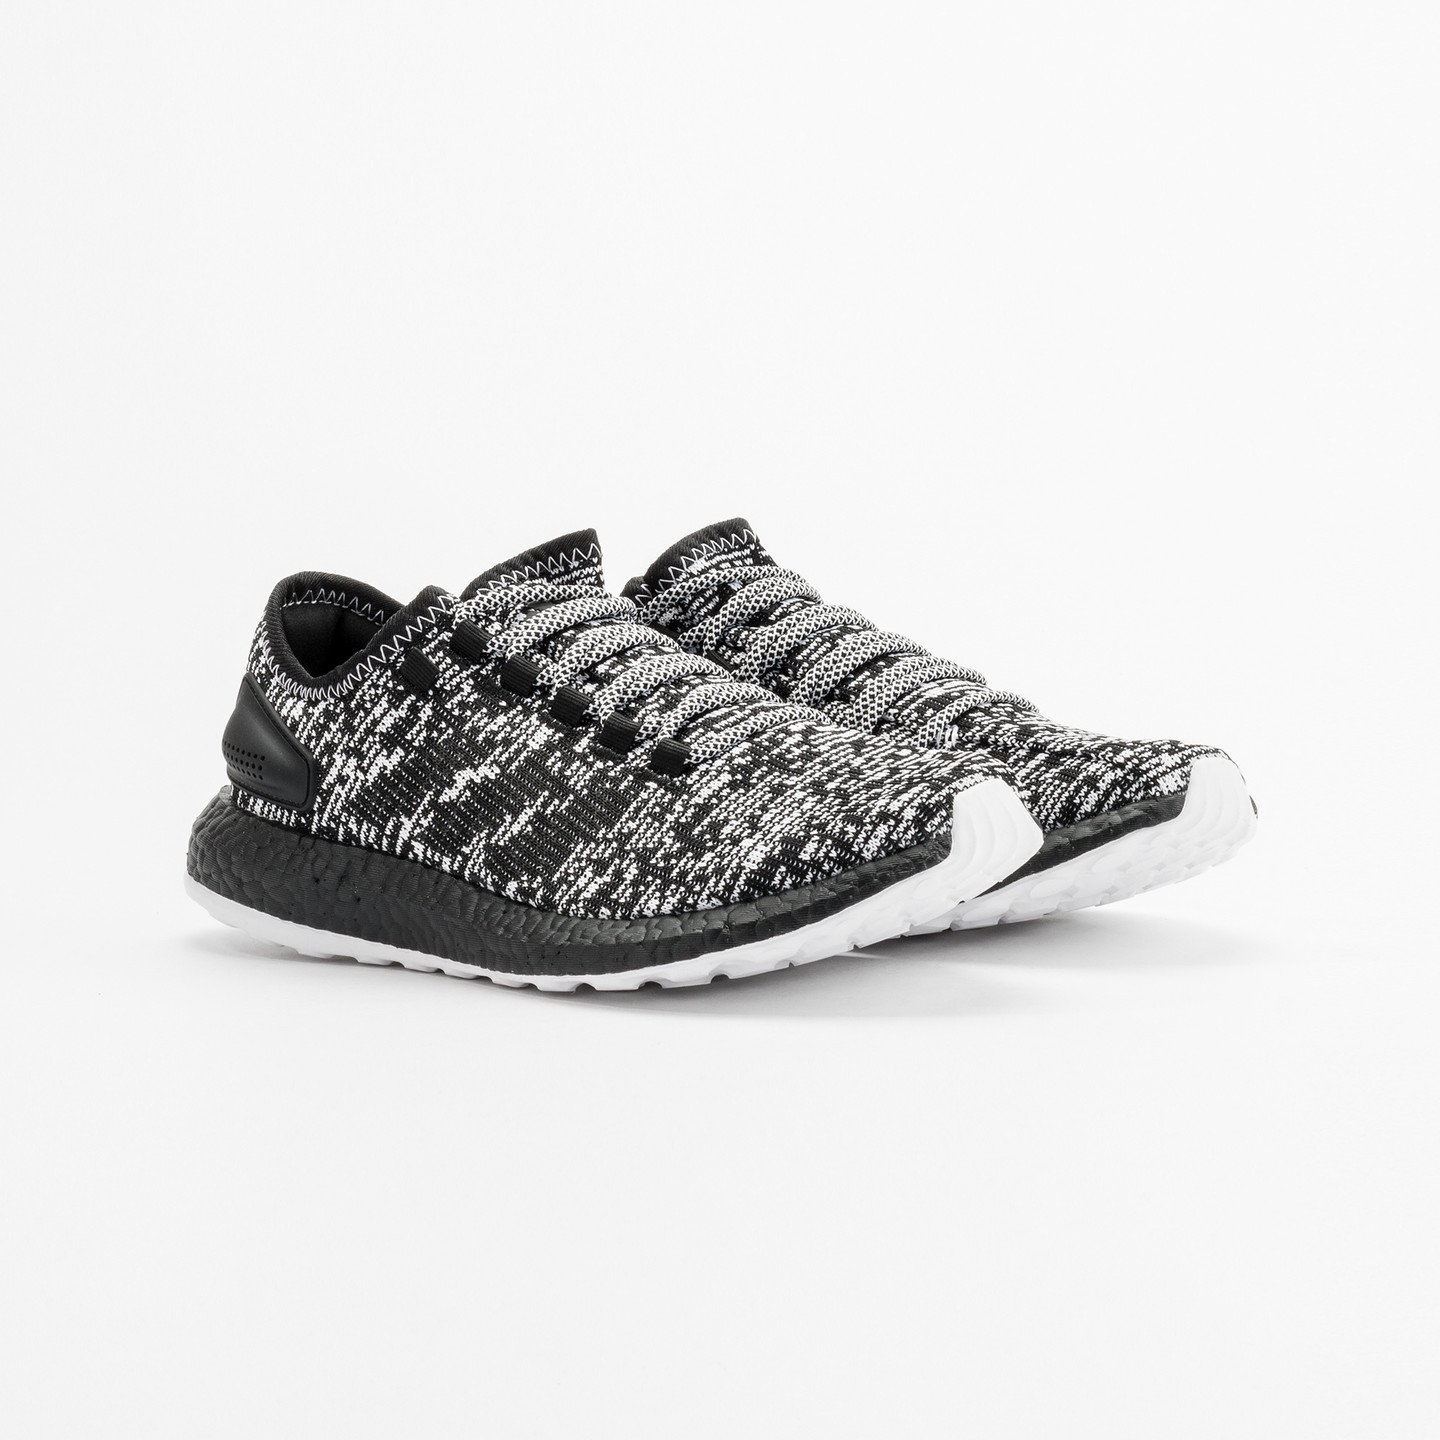 Adidas Pure Boost LTD 'Oreo' Black / White S80704